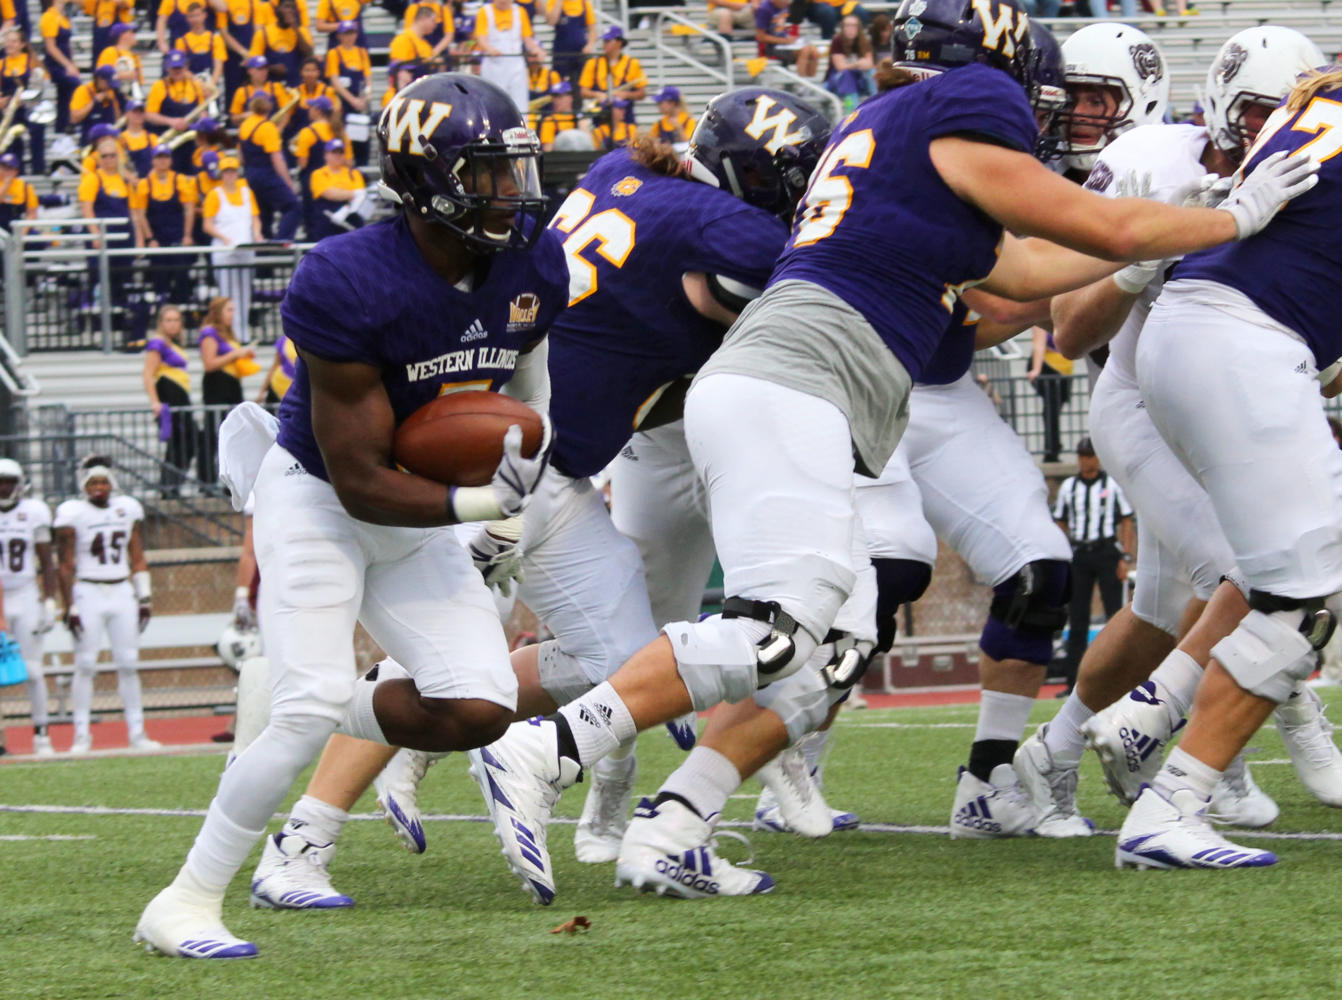 Steve McShane bounces a carry to the right side during a win against Missouri State Saturday afternoon. McShane finished the day with 155 yards rushing and a touchdown.